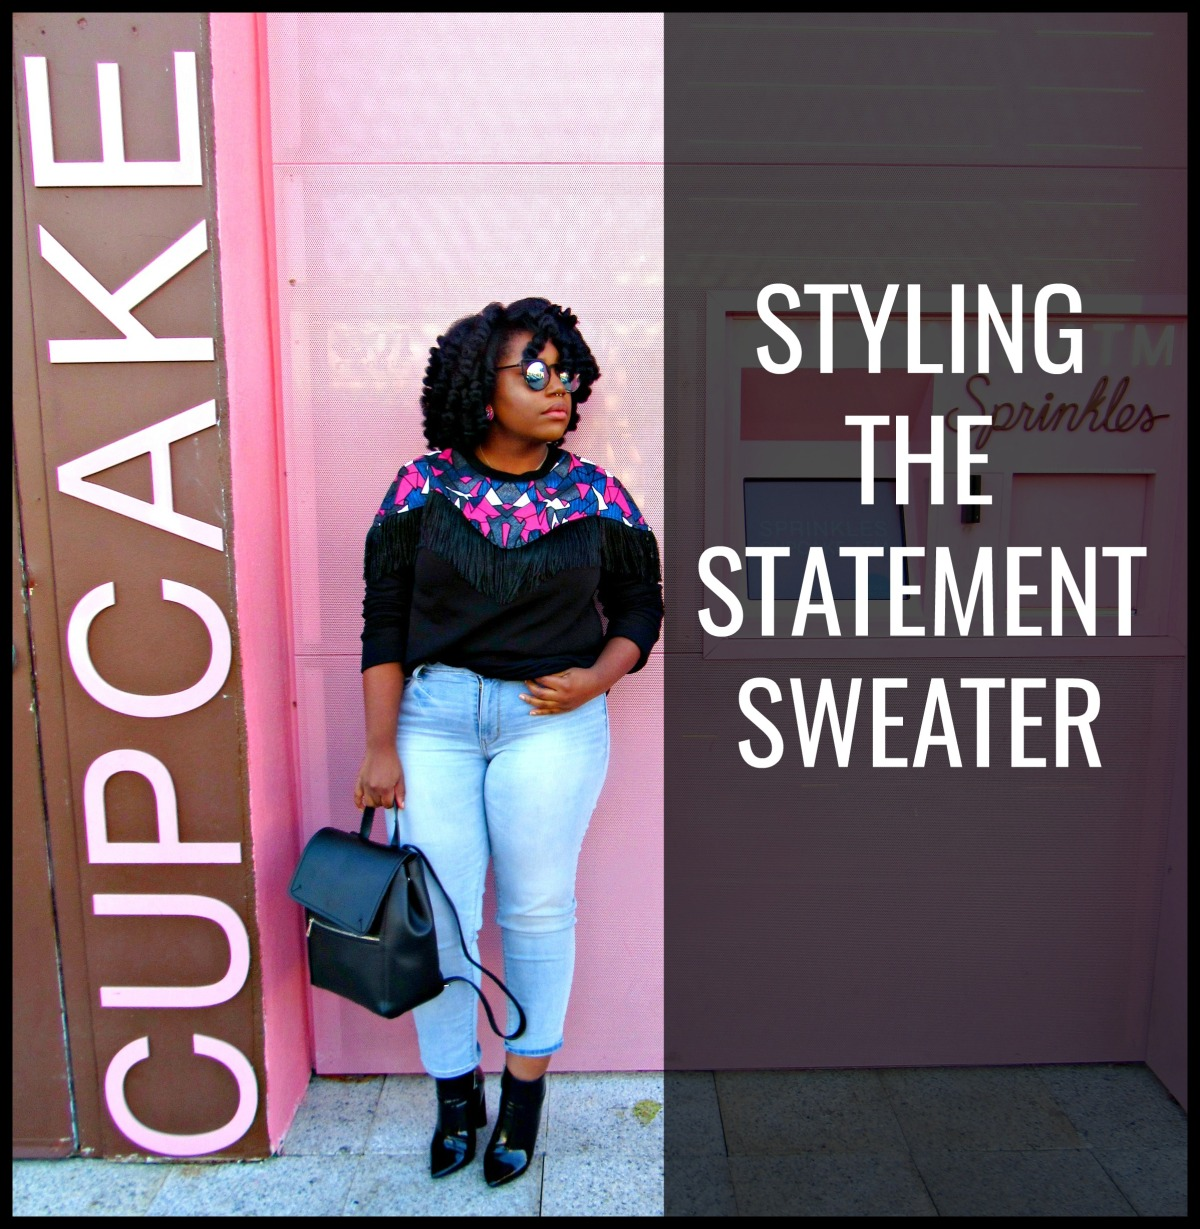 Styling The Statement Sweater